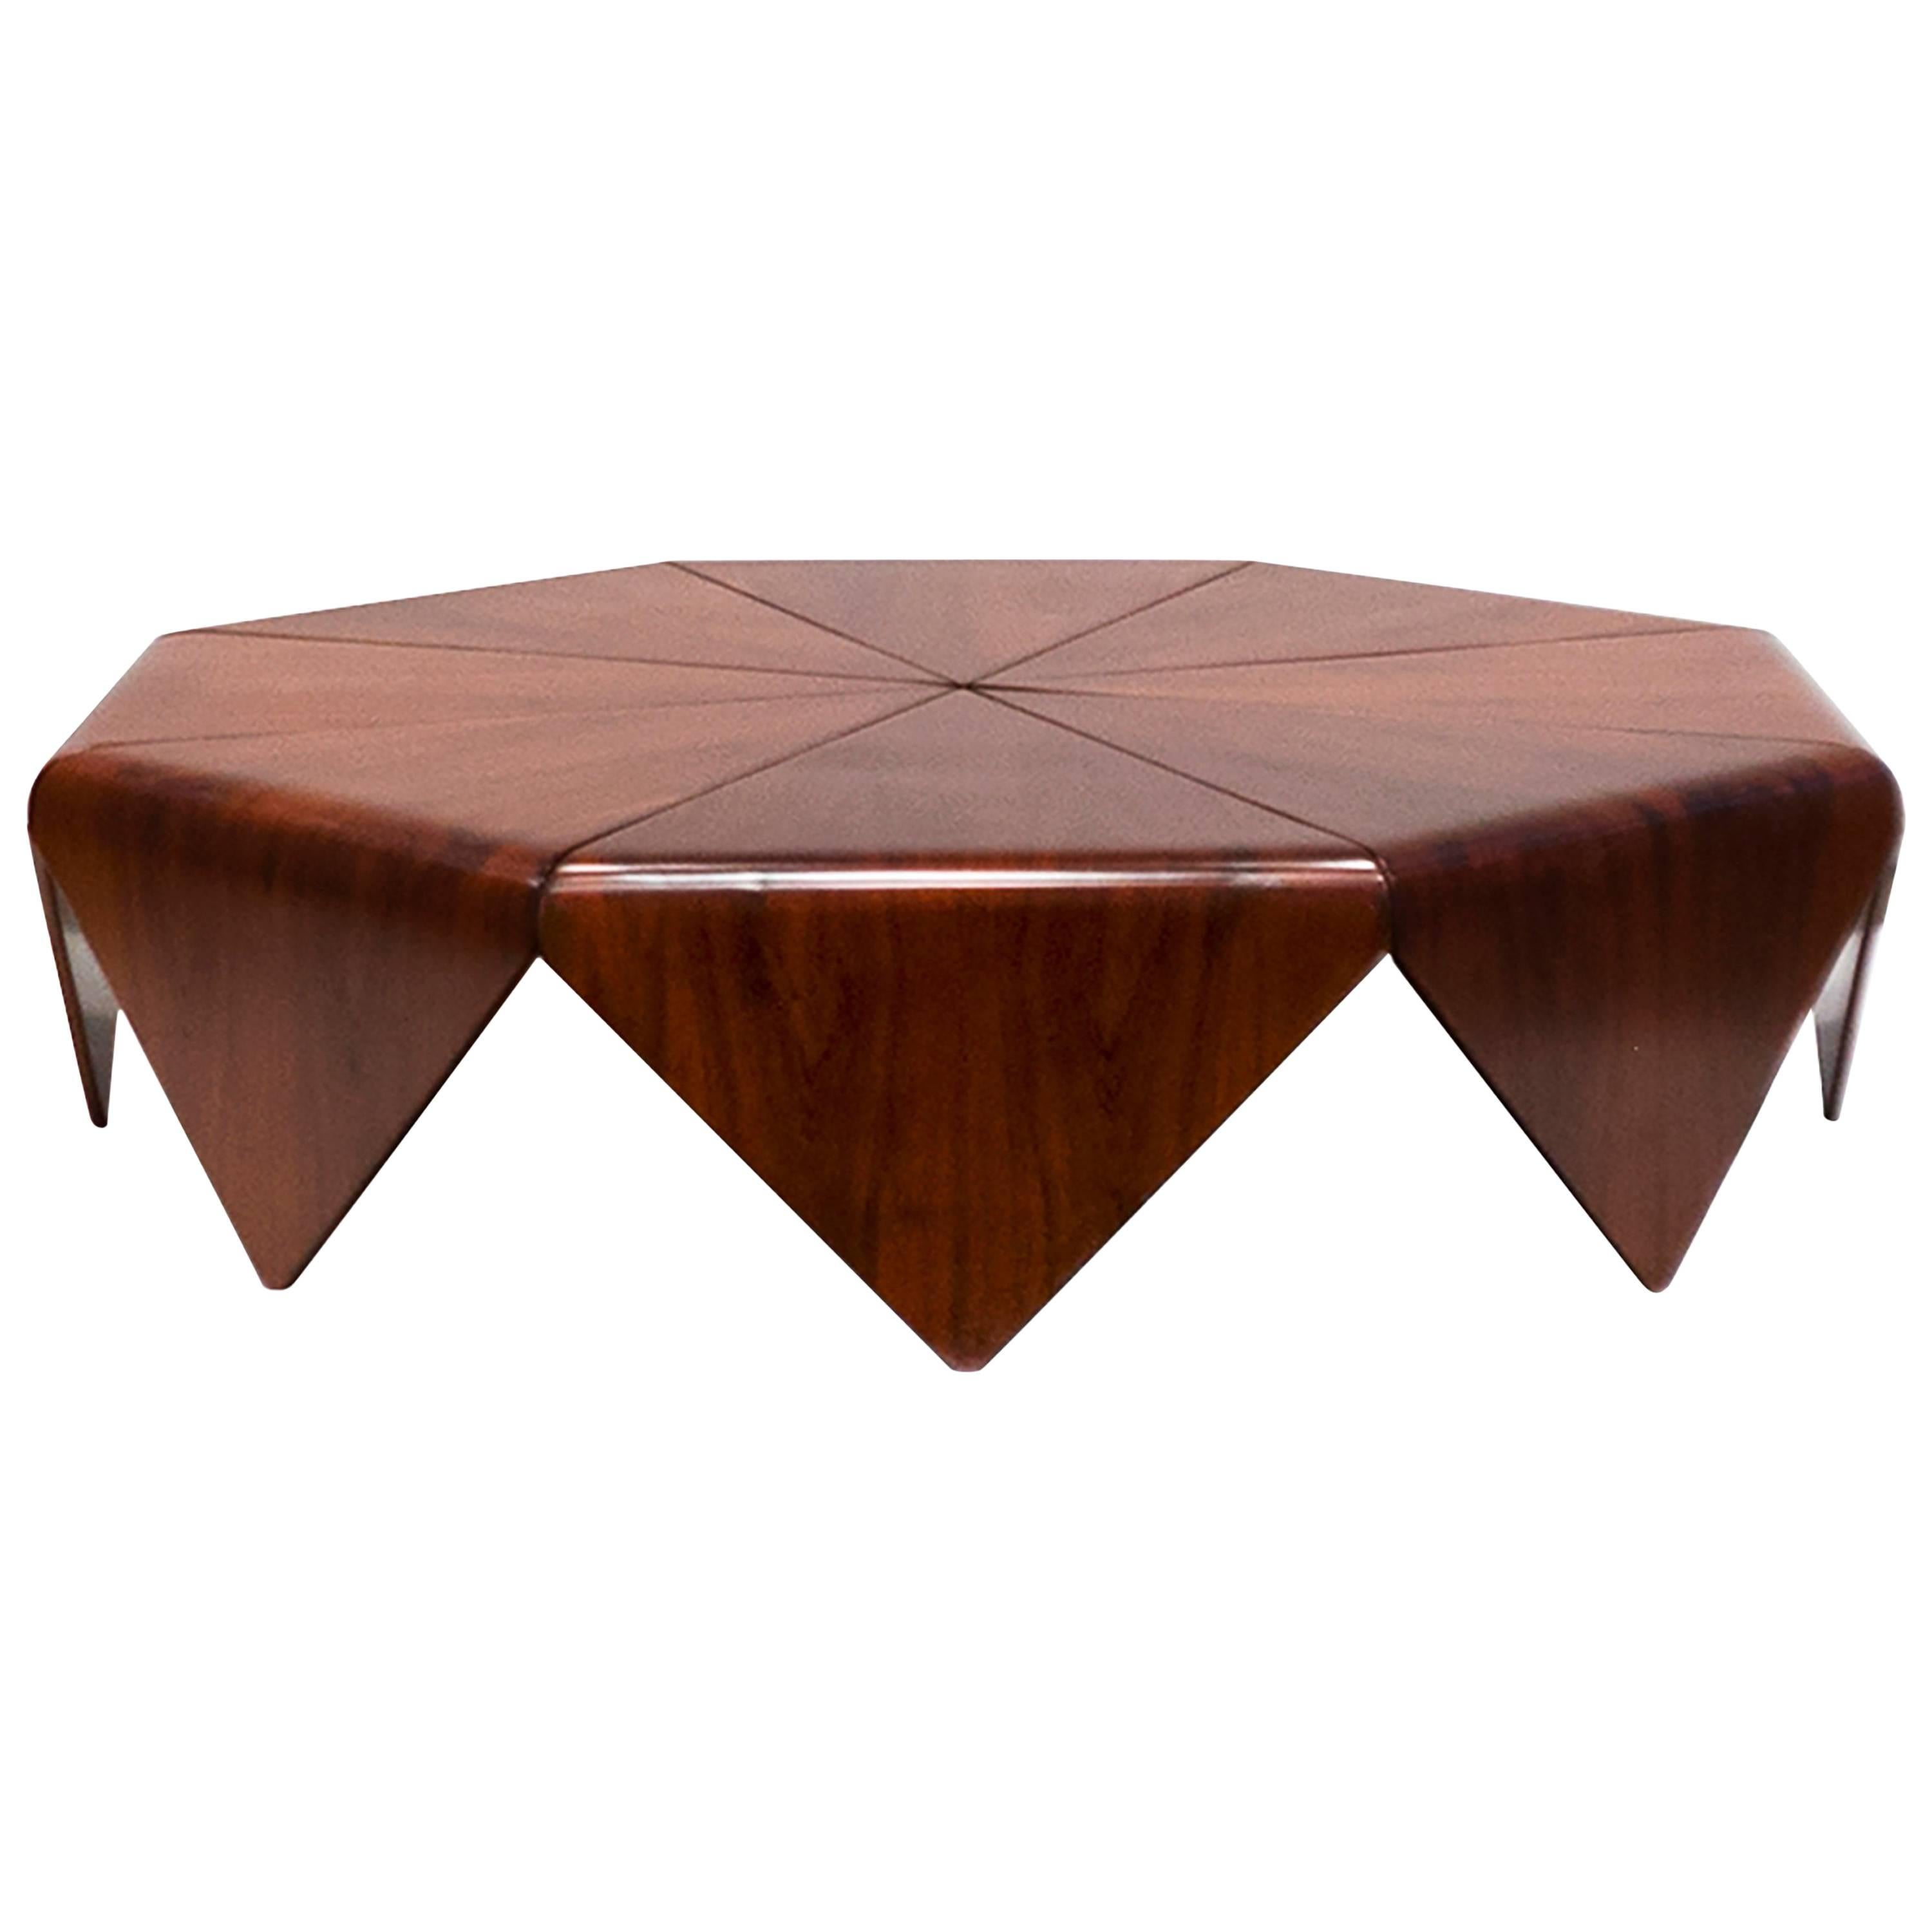 Petalas Coffee Table